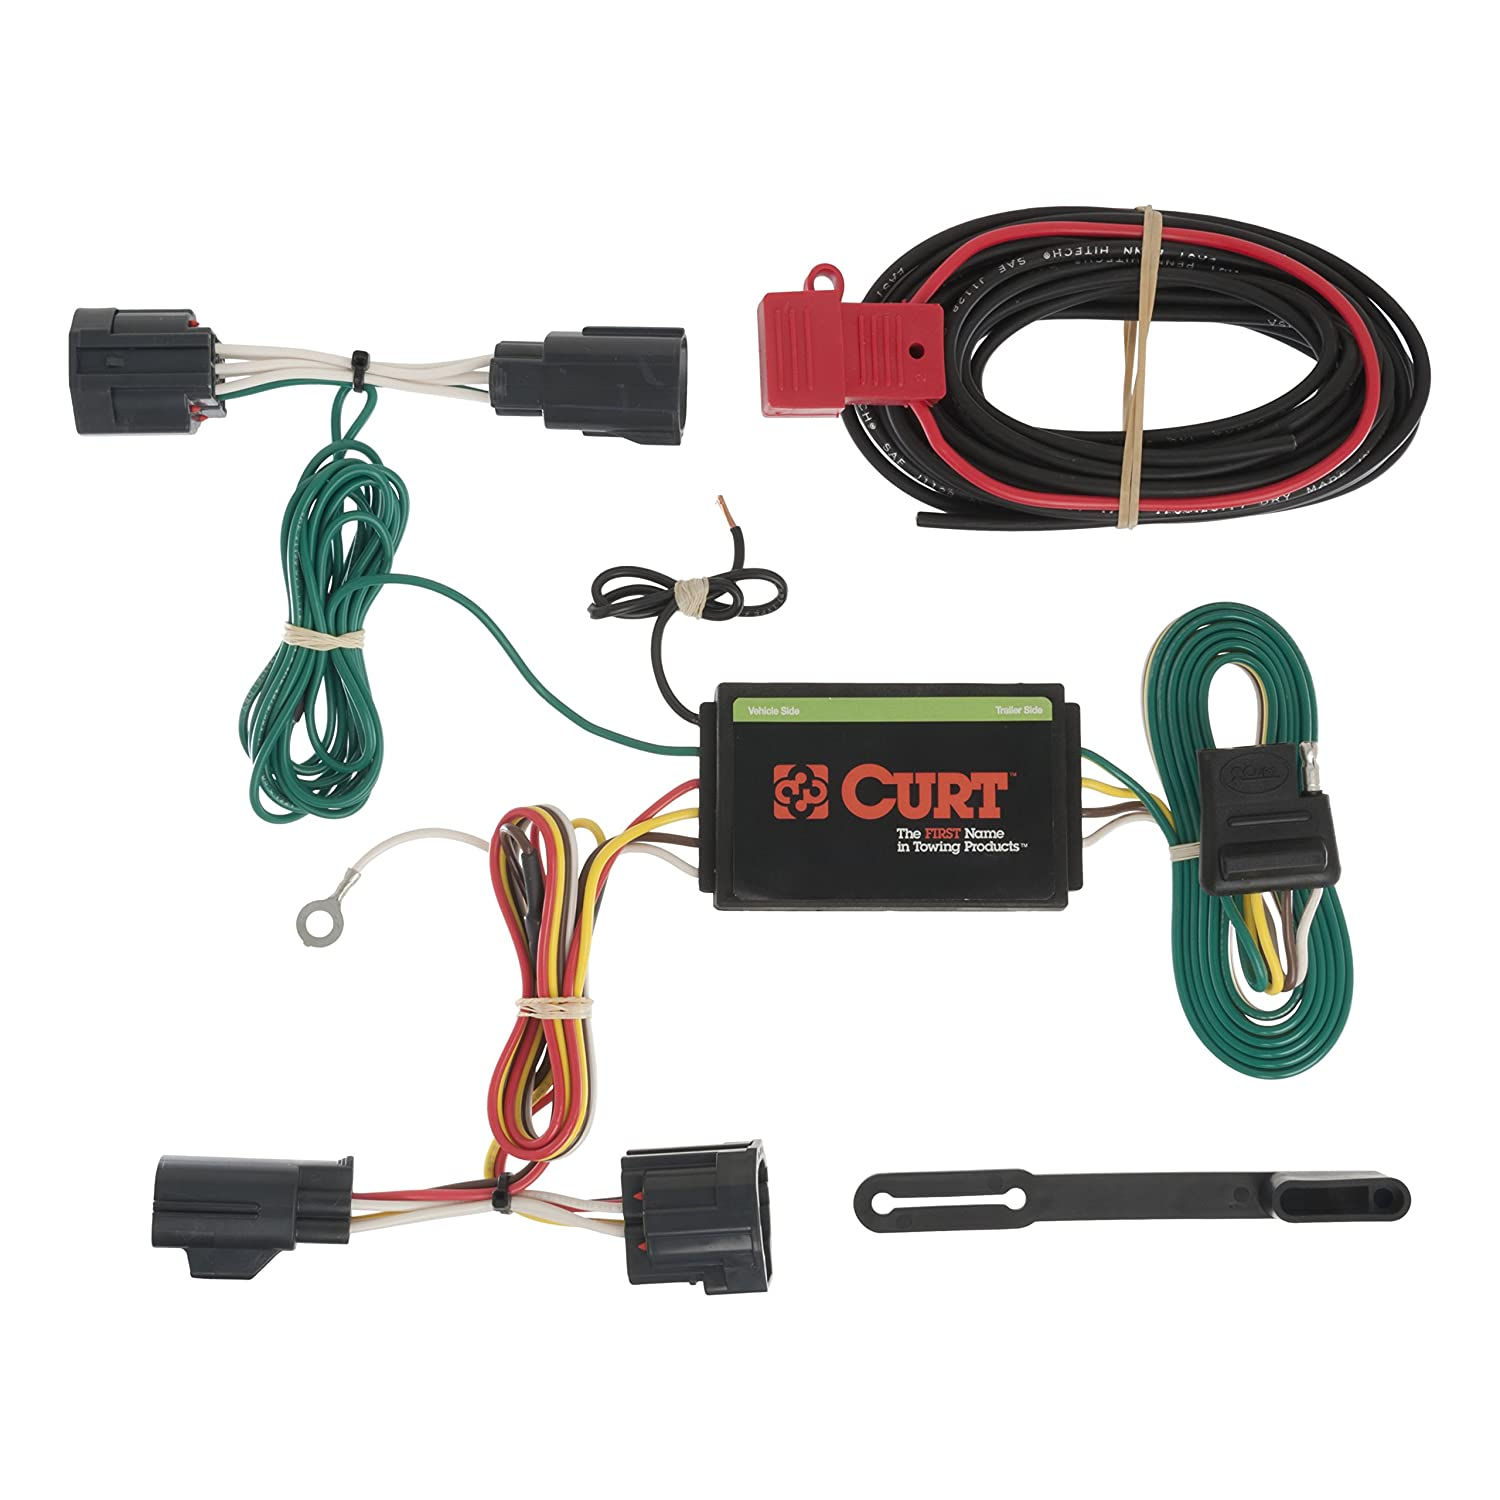 amazon com curt 56183 custom wiring harness automotive rh amazon com curt trailer wiring harness instructions curt trailer wiring harness not working